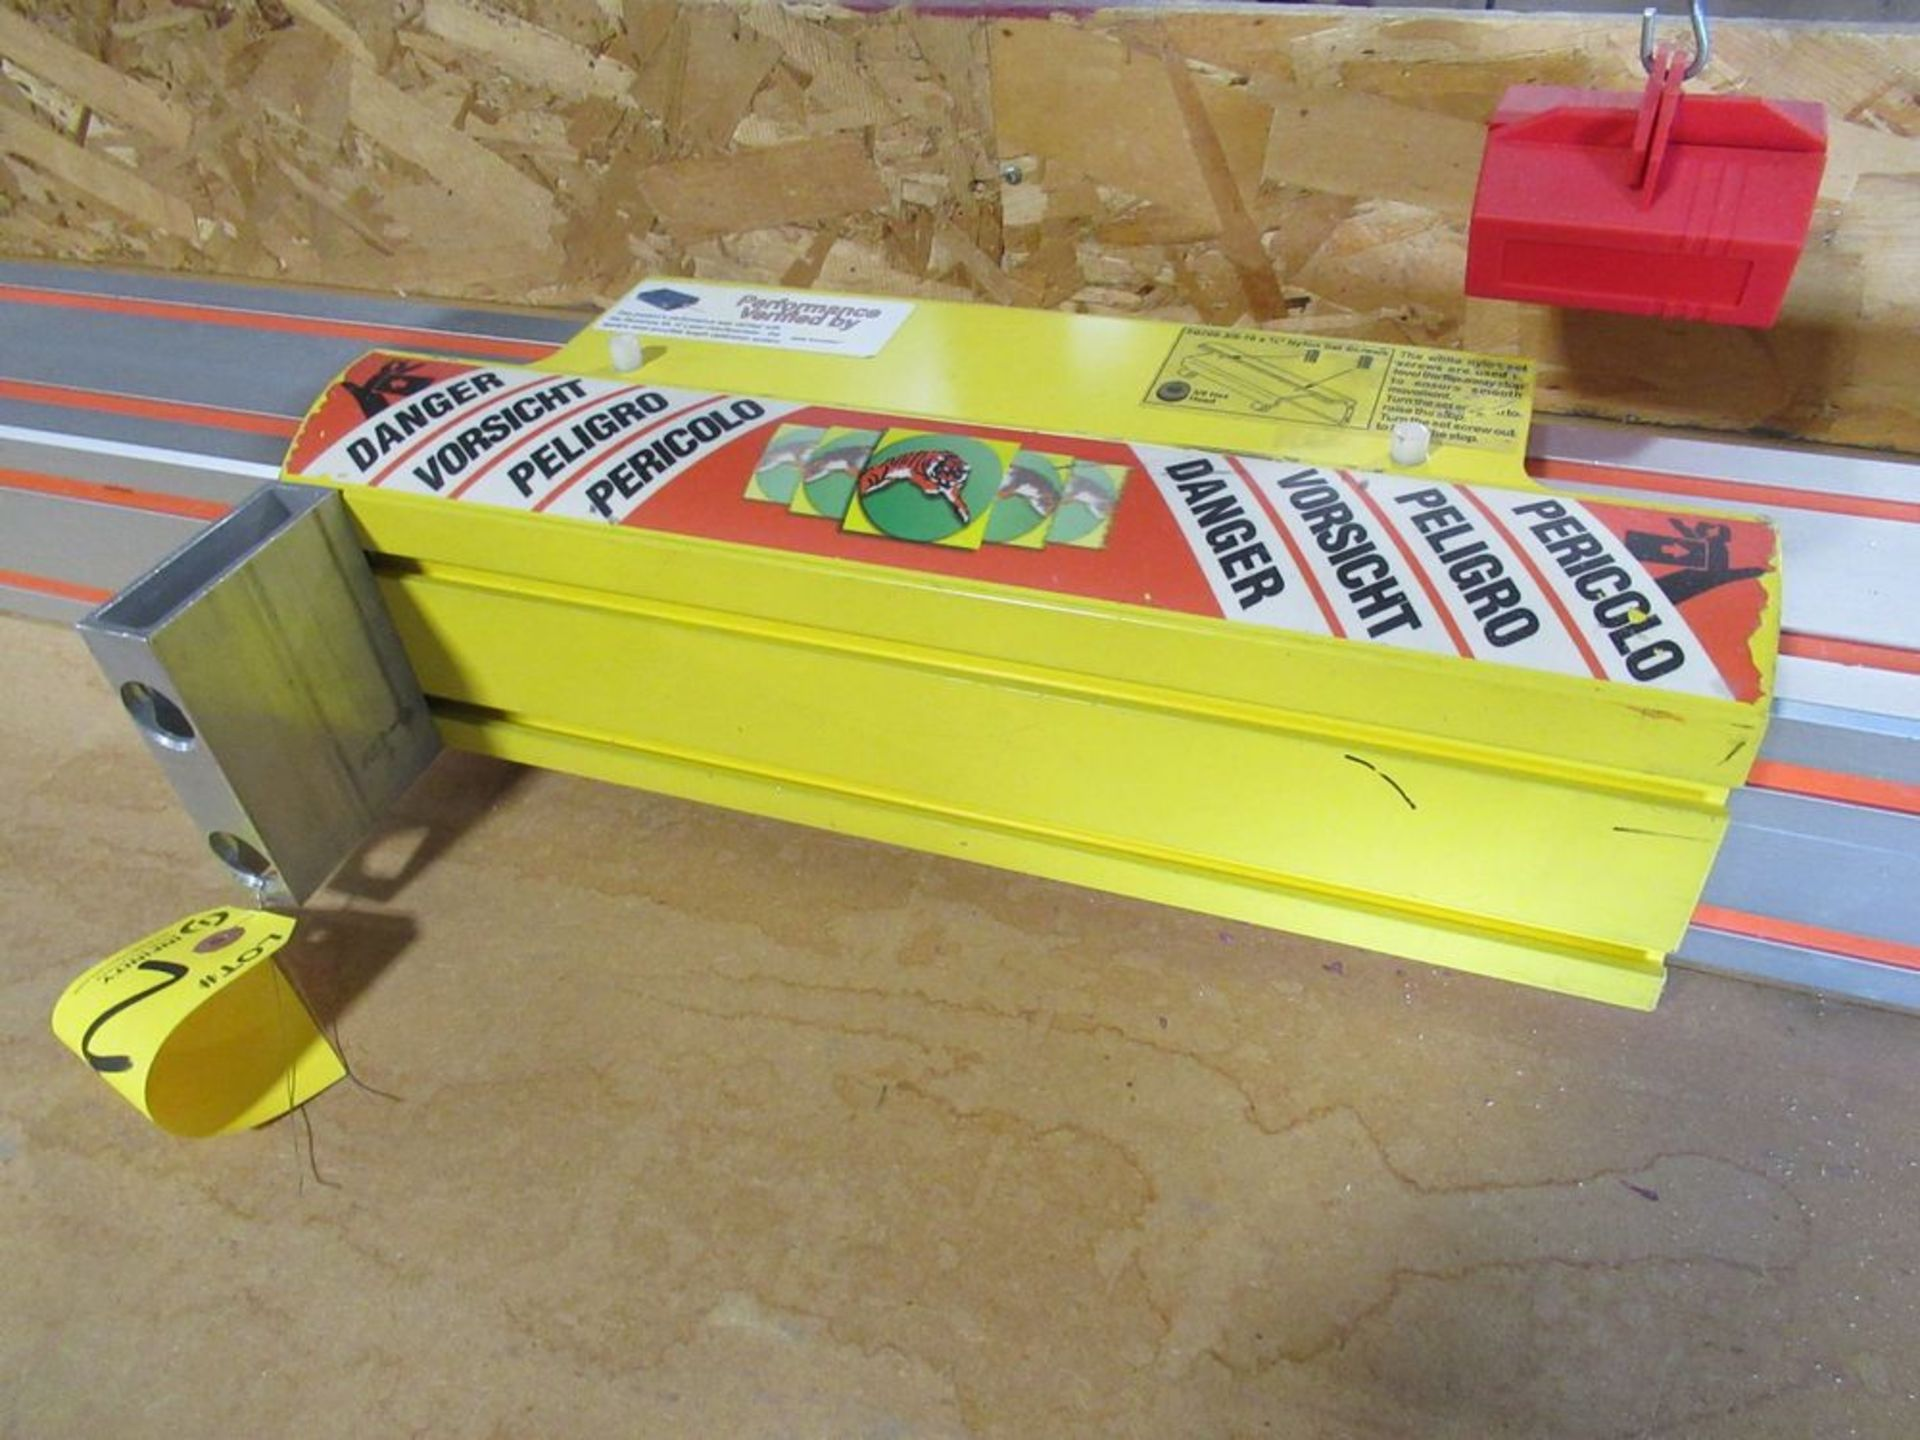 """TIGER STOP 10' MATERIAL MEASURING SYSTEM W/ 22"""" X 8' TABLE - Image 3 of 5"""